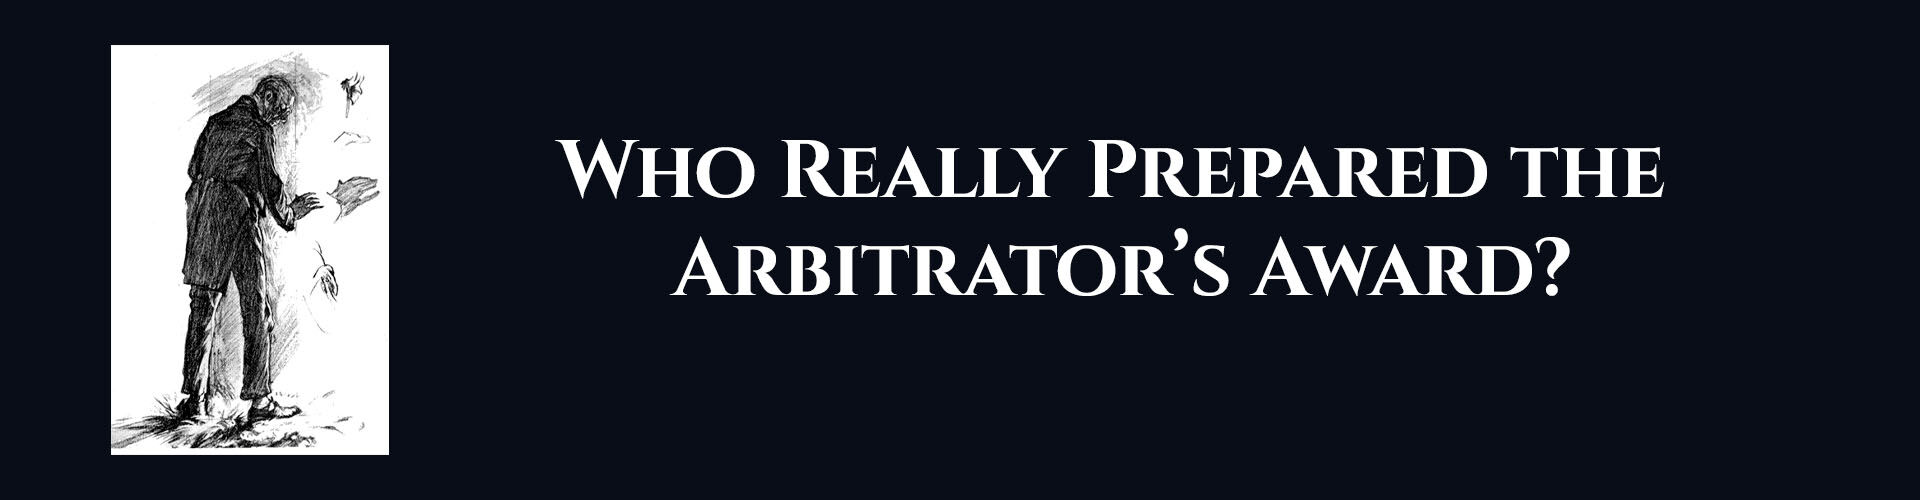 Absent Justice - Who Really Prepared the Arbitrators Award